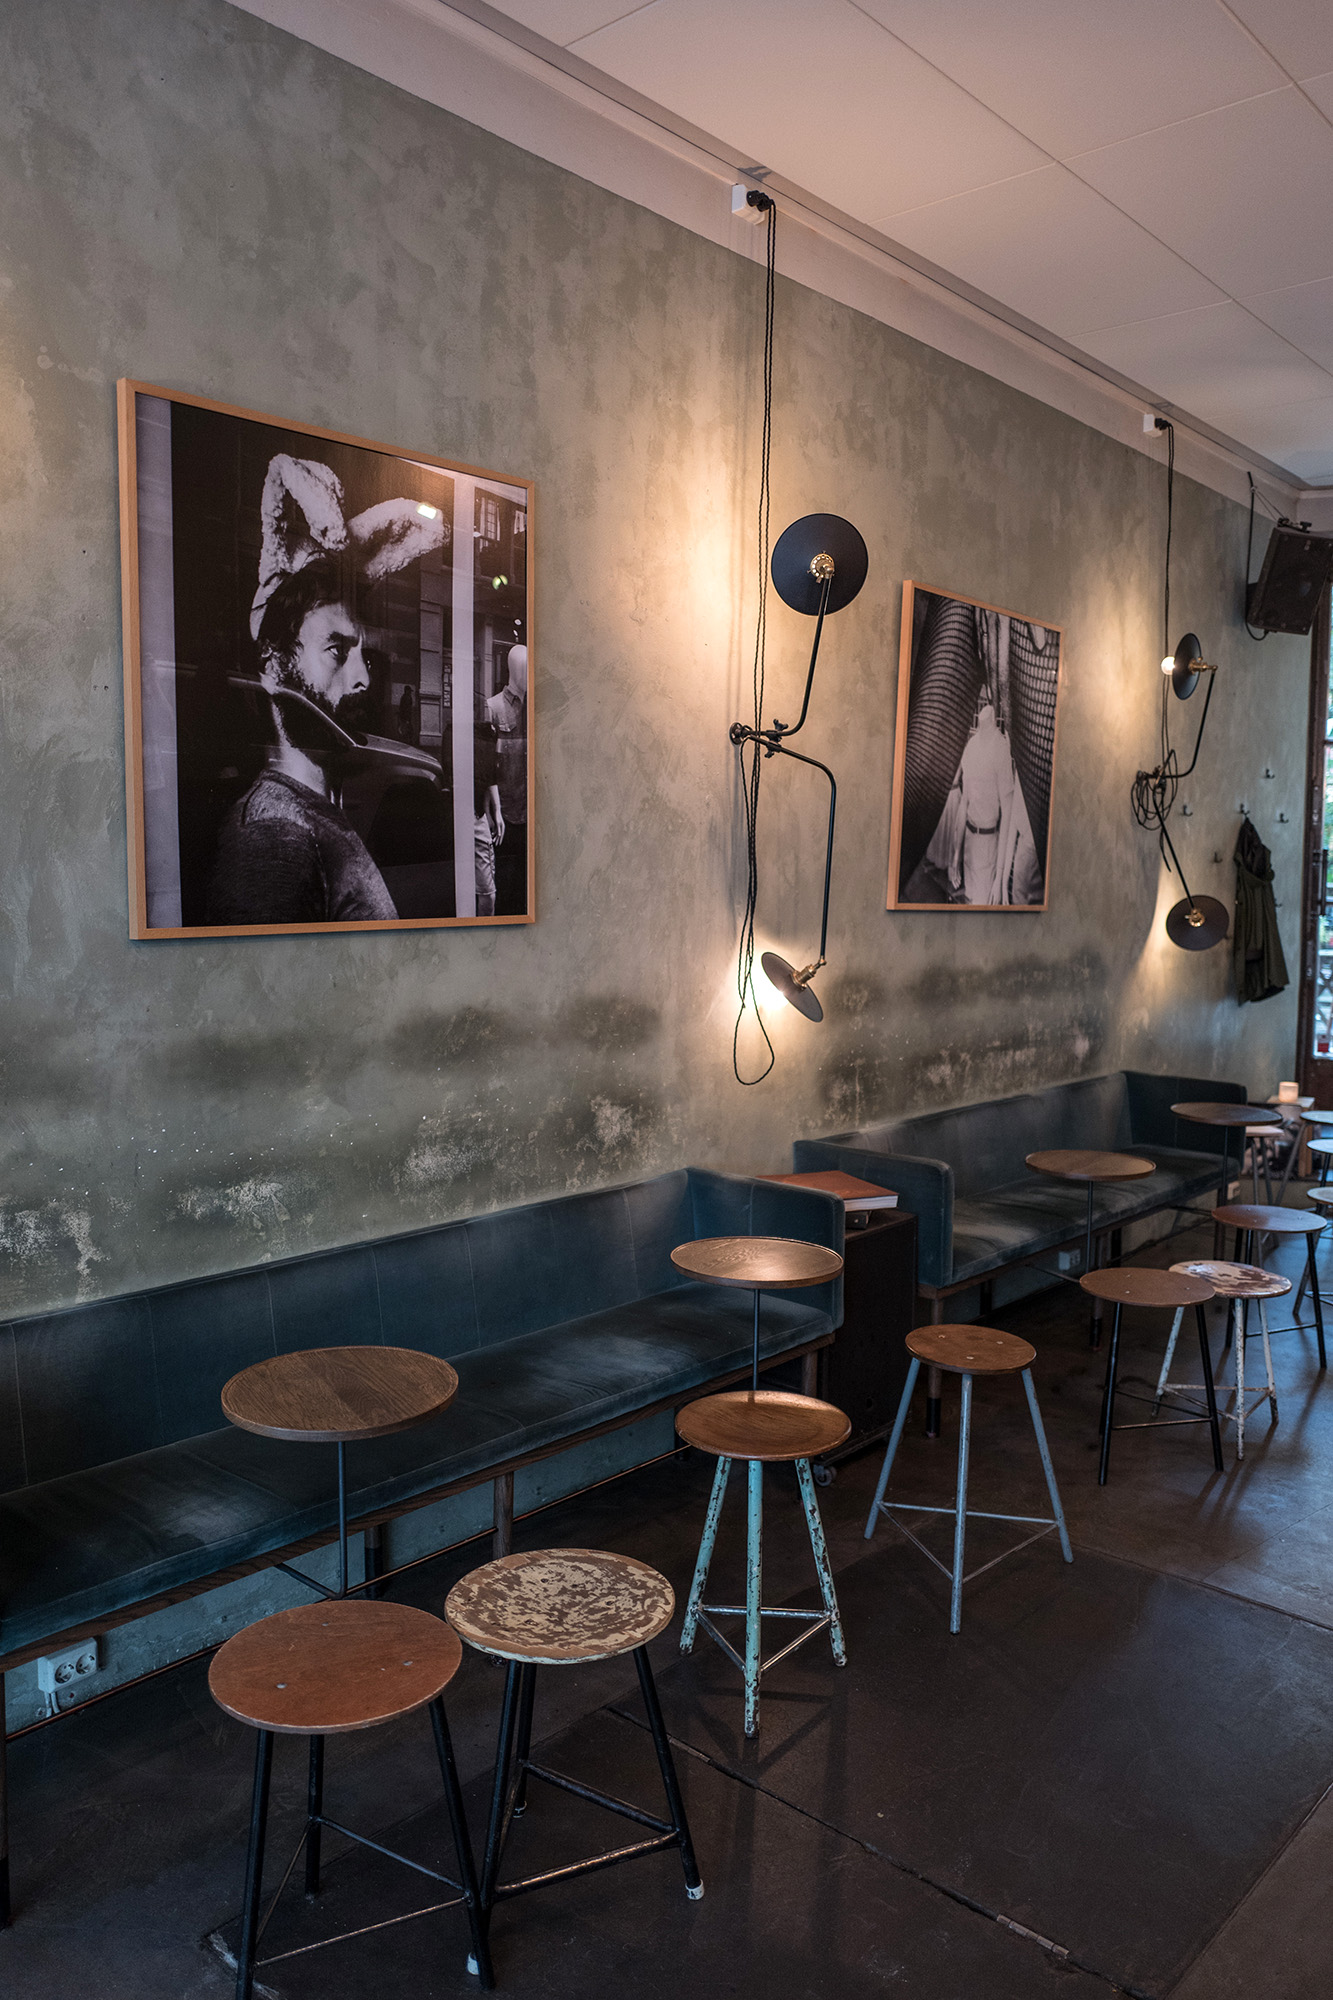 Territoriet wine bar, Olso - Instagrammer's guide to Oslo - 91 Magazine